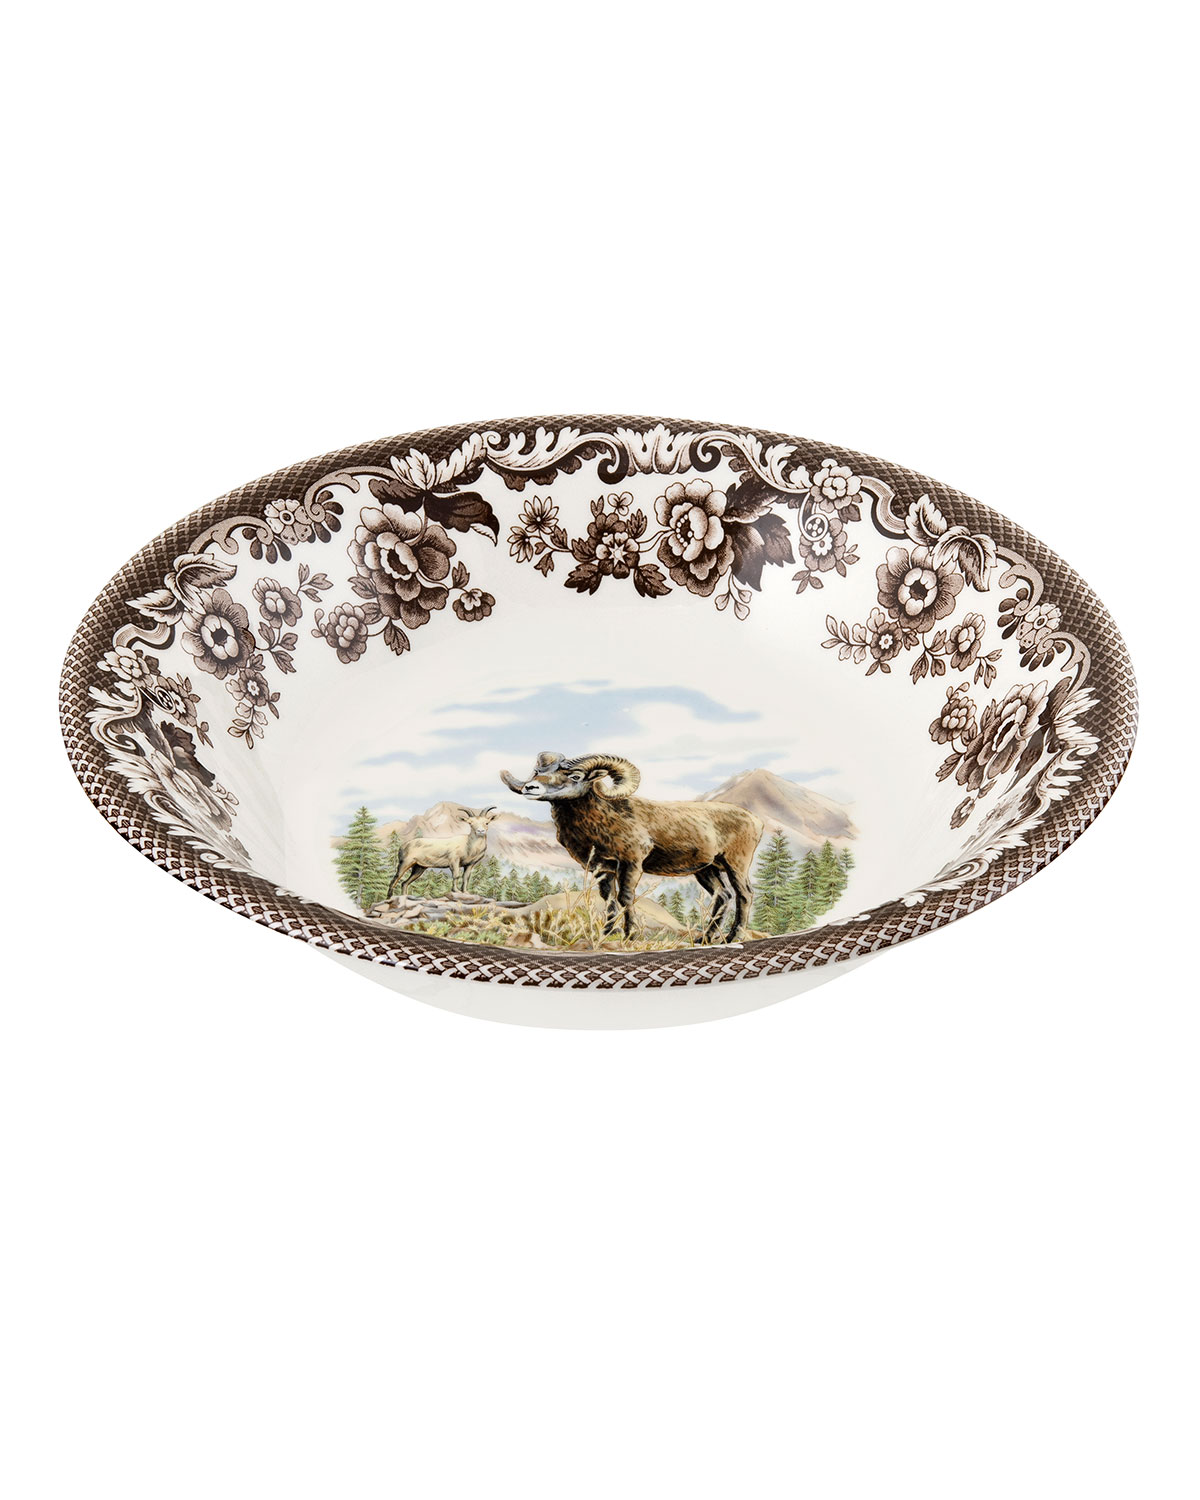 Spode WOODLAND BIGHORN SHEEP ASCOT CEREAL BOWL